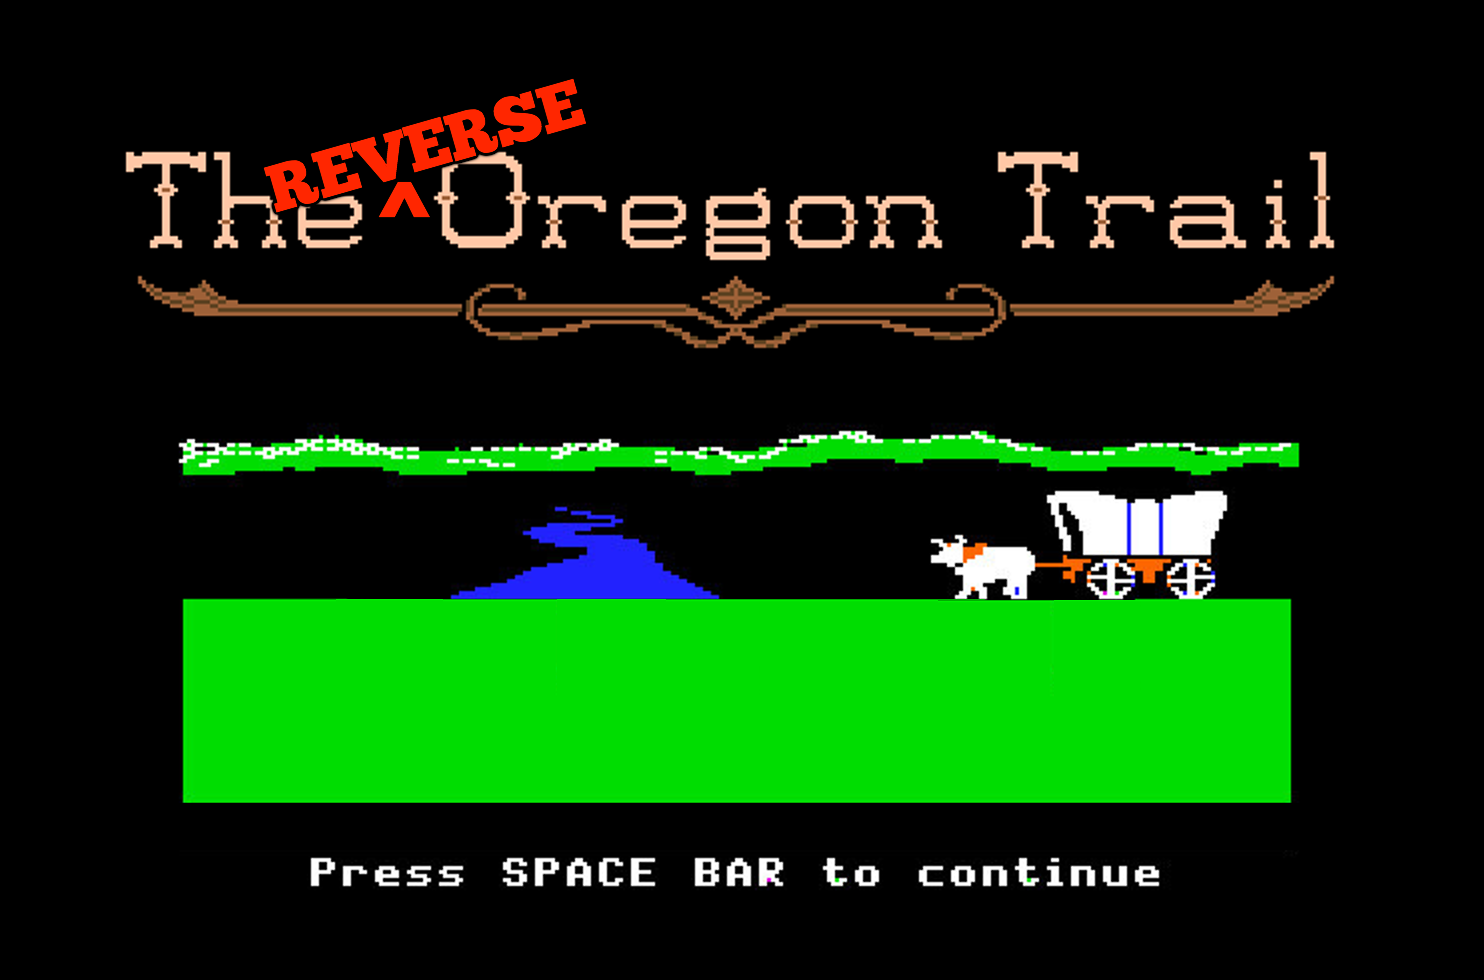 The Reverse Oregon Trail